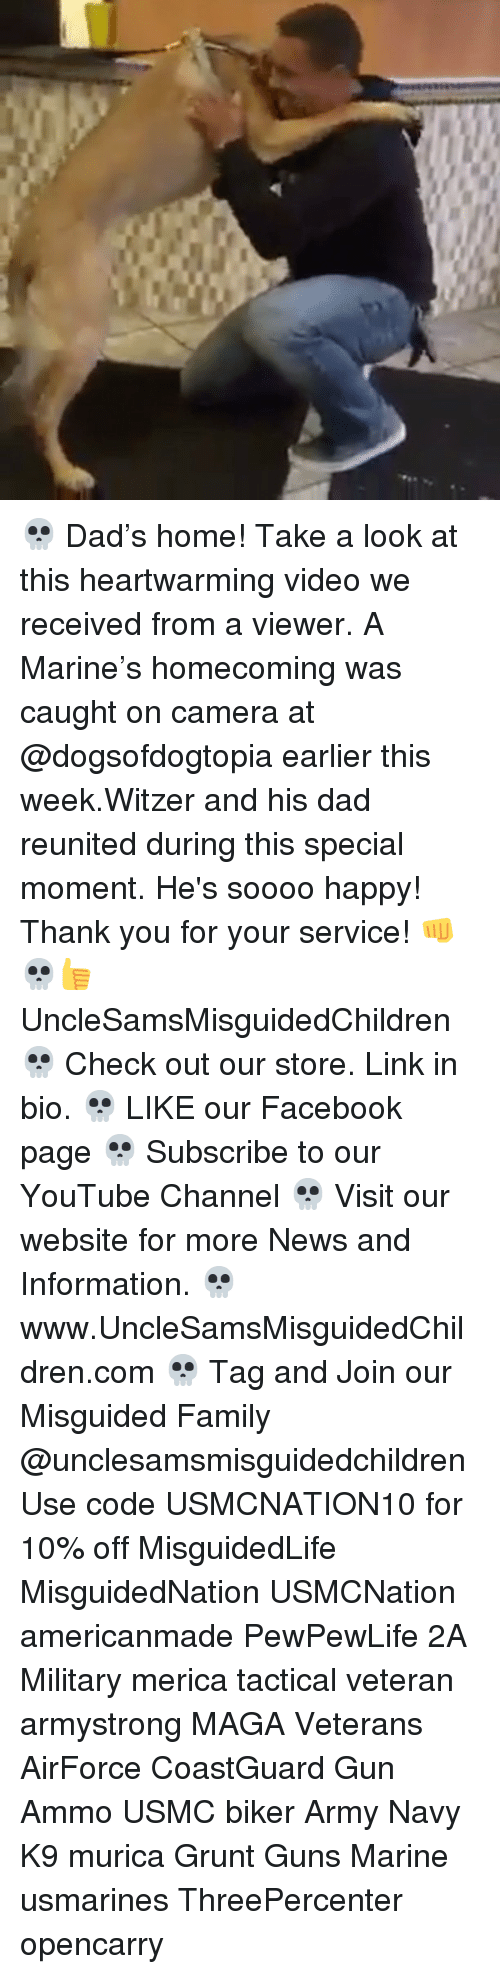 marinate: 💀 Dad's home! Take a look at this heartwarming video we received from a viewer. A Marine's homecoming was caught on camera at @dogsofdogtopia earlier this week.Witzer and his dad reunited during this special moment. He's soooo happy! Thank you for your service! 👊💀👍 UncleSamsMisguidedChildren 💀 Check out our store. Link in bio. 💀 LIKE our Facebook page 💀 Subscribe to our YouTube Channel 💀 Visit our website for more News and Information. 💀 www.UncleSamsMisguidedChildren.com 💀 Tag and Join our Misguided Family @unclesamsmisguidedchildren Use code USMCNATION10 for 10% off MisguidedLife MisguidedNation USMCNation americanmade PewPewLife 2A Military merica tactical veteran armystrong MAGA Veterans AirForce CoastGuard Gun Ammo USMC biker Army Navy K9 murica Grunt Guns Marine usmarines ThreePercenter opencarry